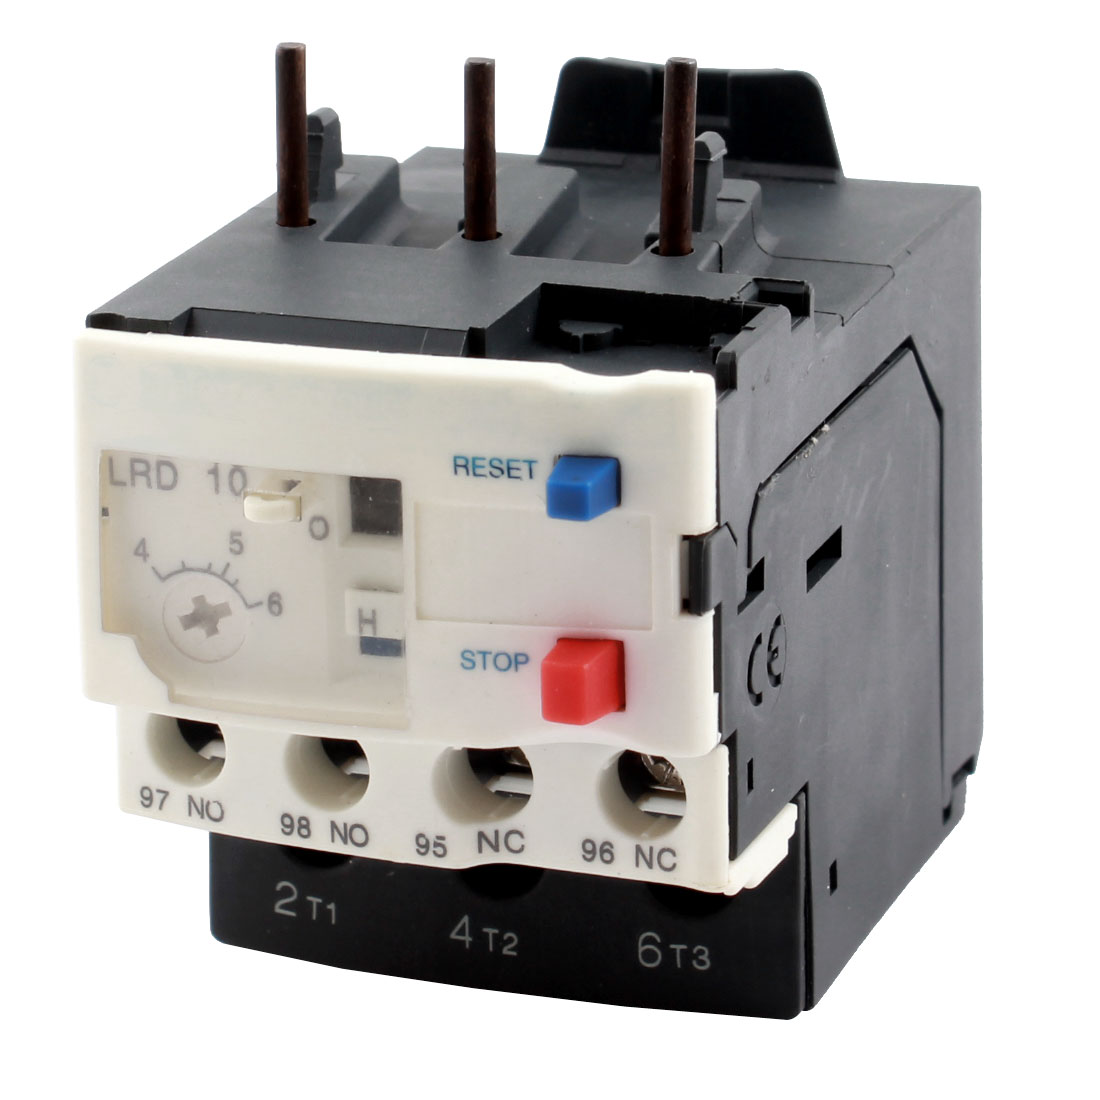 LRD10C 4-6A 1NO 1NC 3 Phases Adjustable Motor Protector Electric Thermal Overload Relay